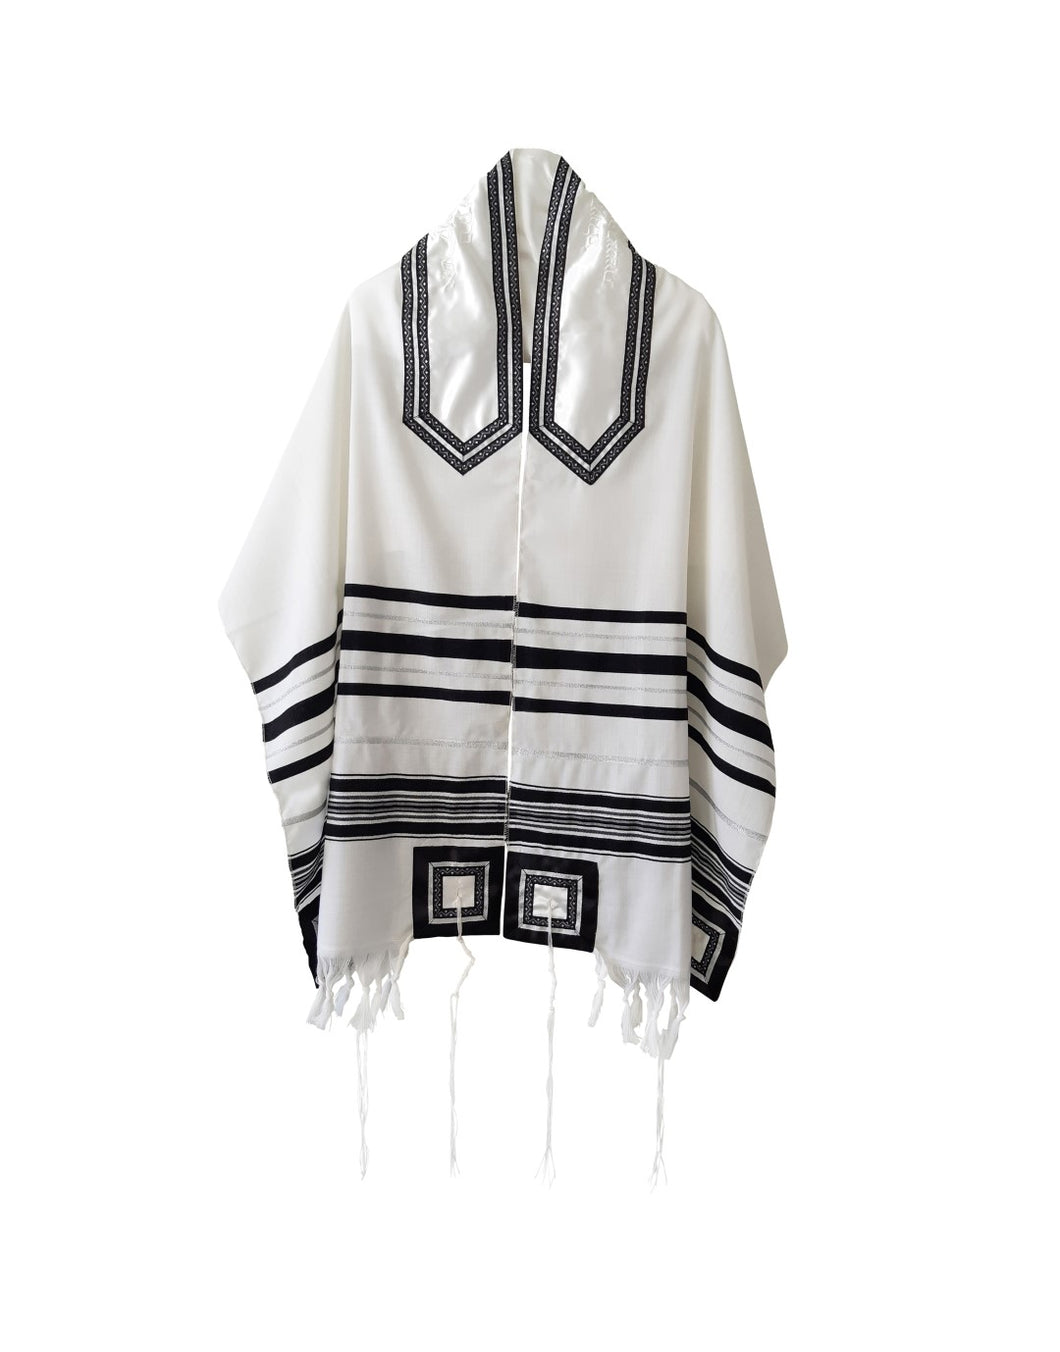 Classic Black and Silver Decorated Wool Tallit for Men, Bar Mitzvah Tallit ,Hebrew Prayer Shawl Tzitzit, Wedding Tallit, Tallis 1